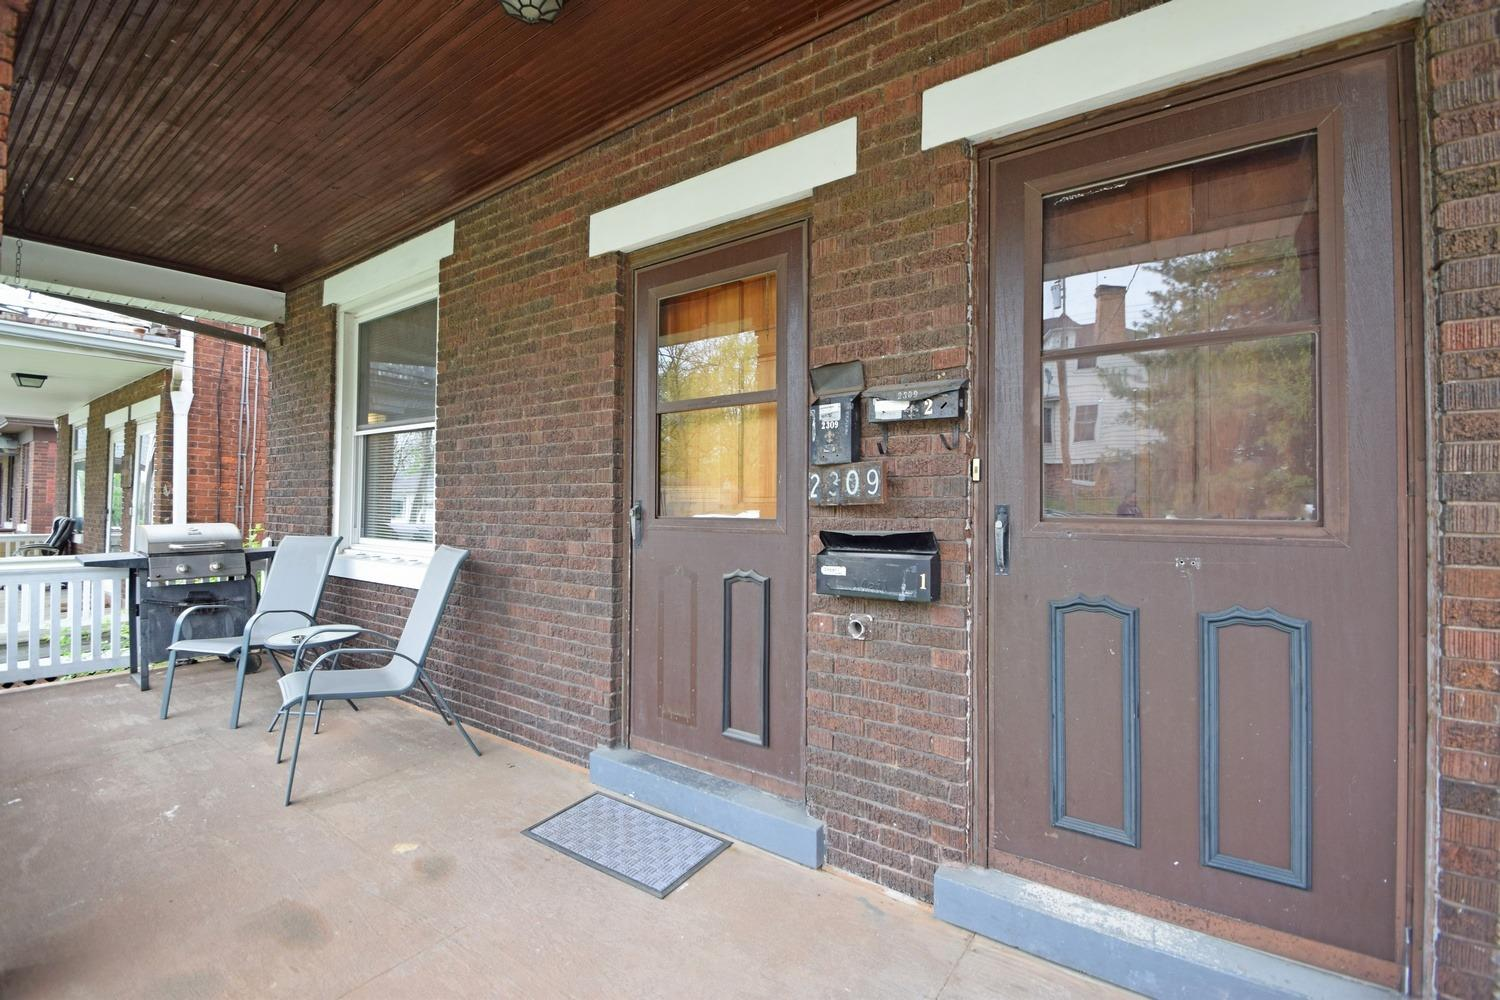 Photo 2 for 2309 Morton Ave Norwood, OH 45212